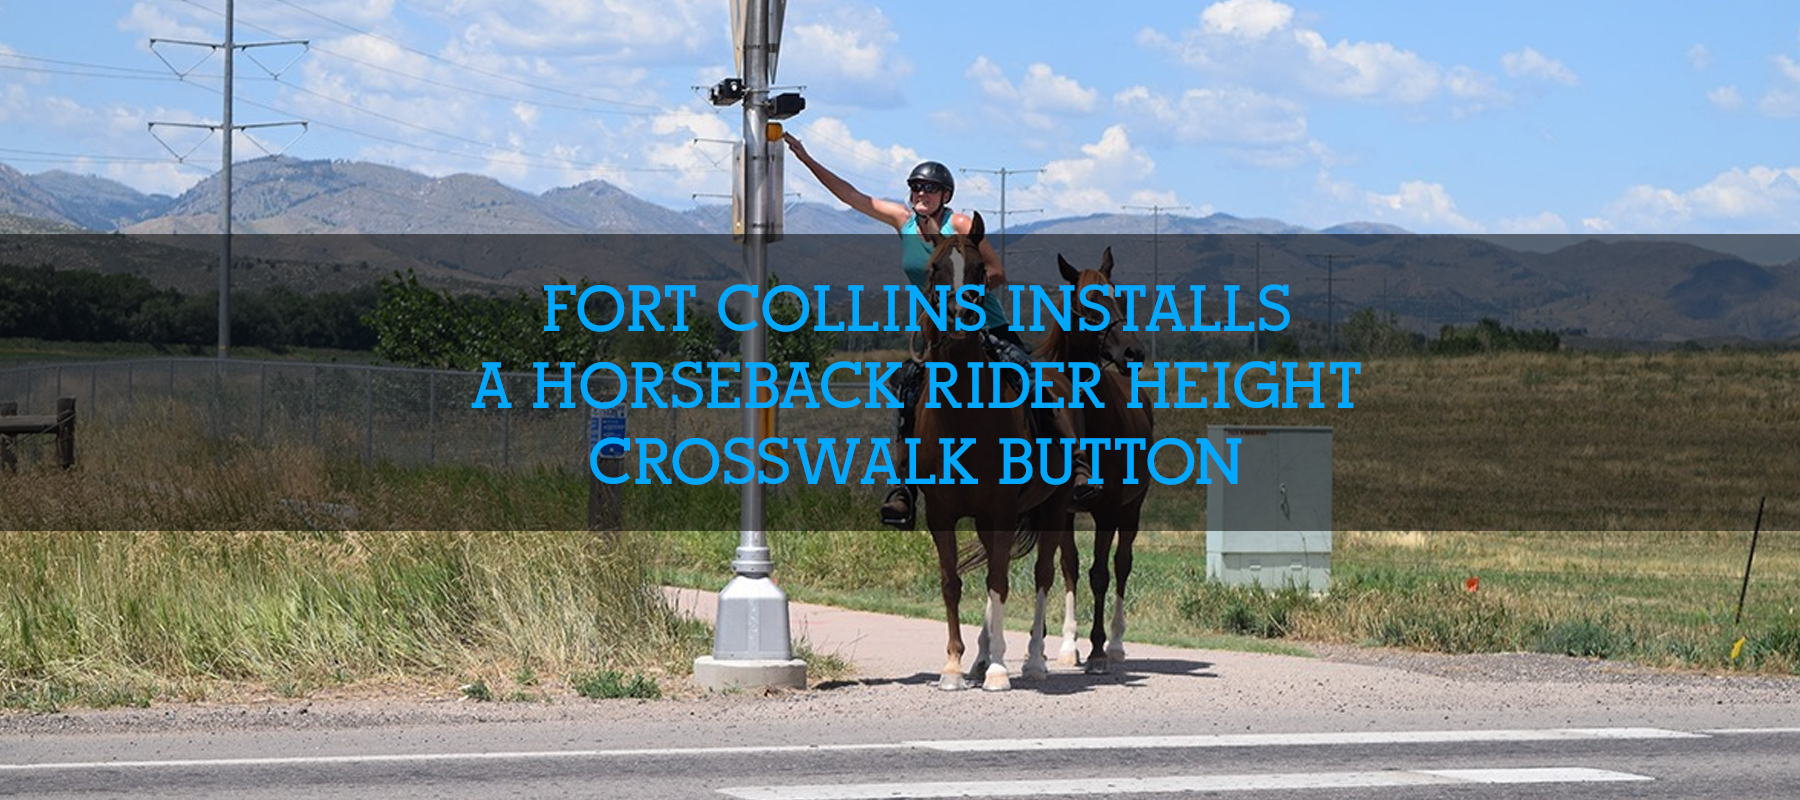 Crosswalk Button for Horseback Riders